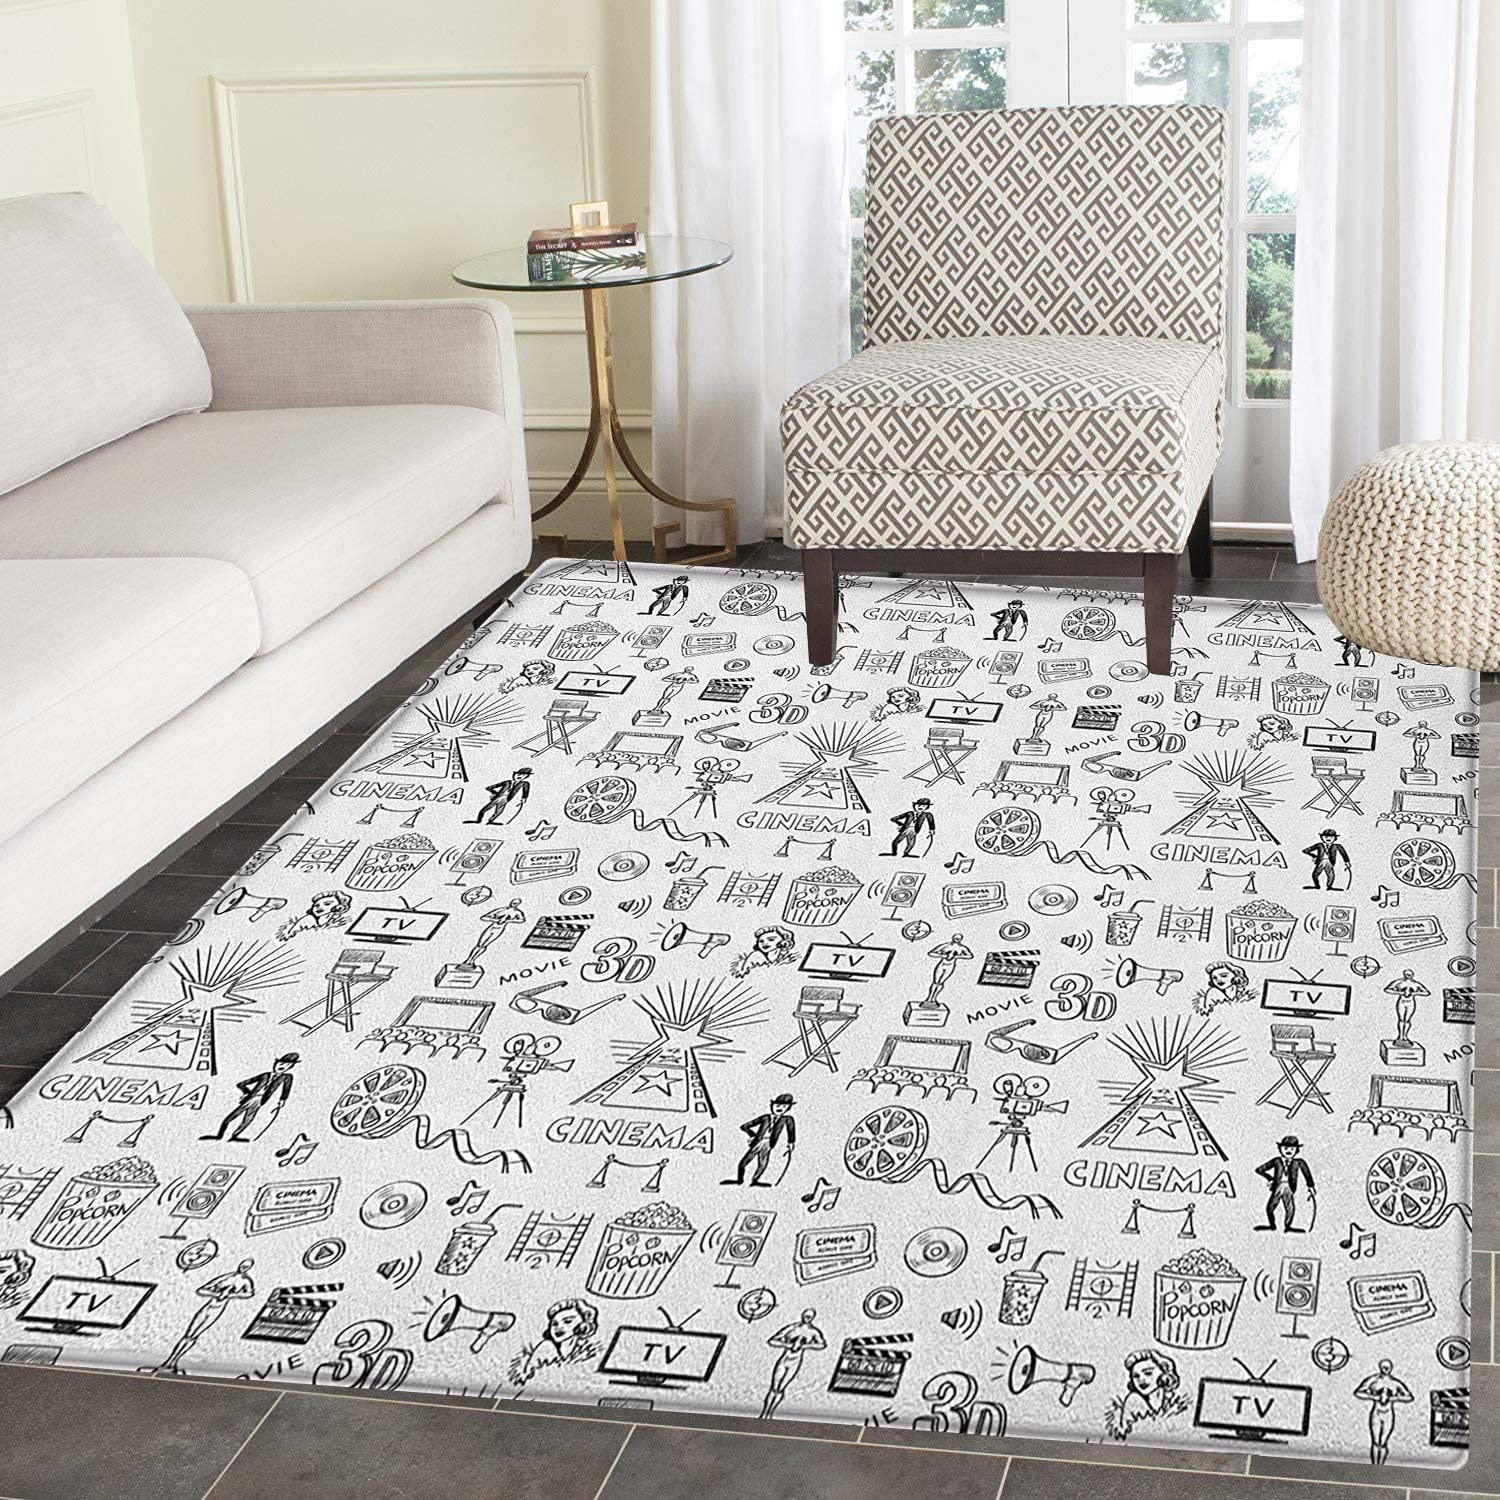 Amazon Com Movie Theater Area Rug Carpet Hand Drawn Style Cinema Pattern With Various Different Icons Black And White Living Dining Room Bedroom Hallway Office Carpet 5 X6 Black White Kitchen Dining